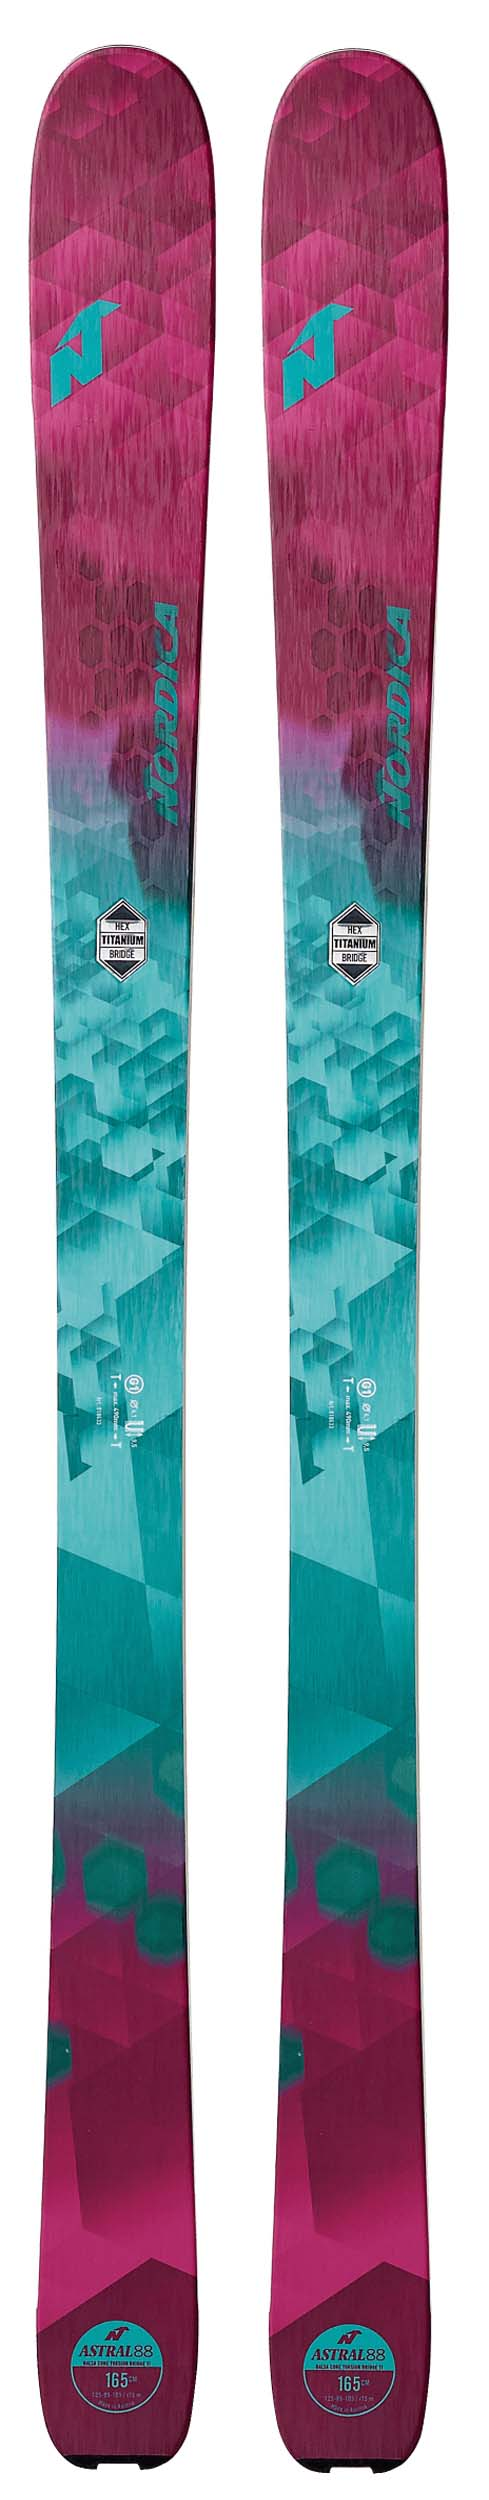 Nordica 2018 Astral 88 Skis (Without Bindings / Flat) NEW !! 151,165cm